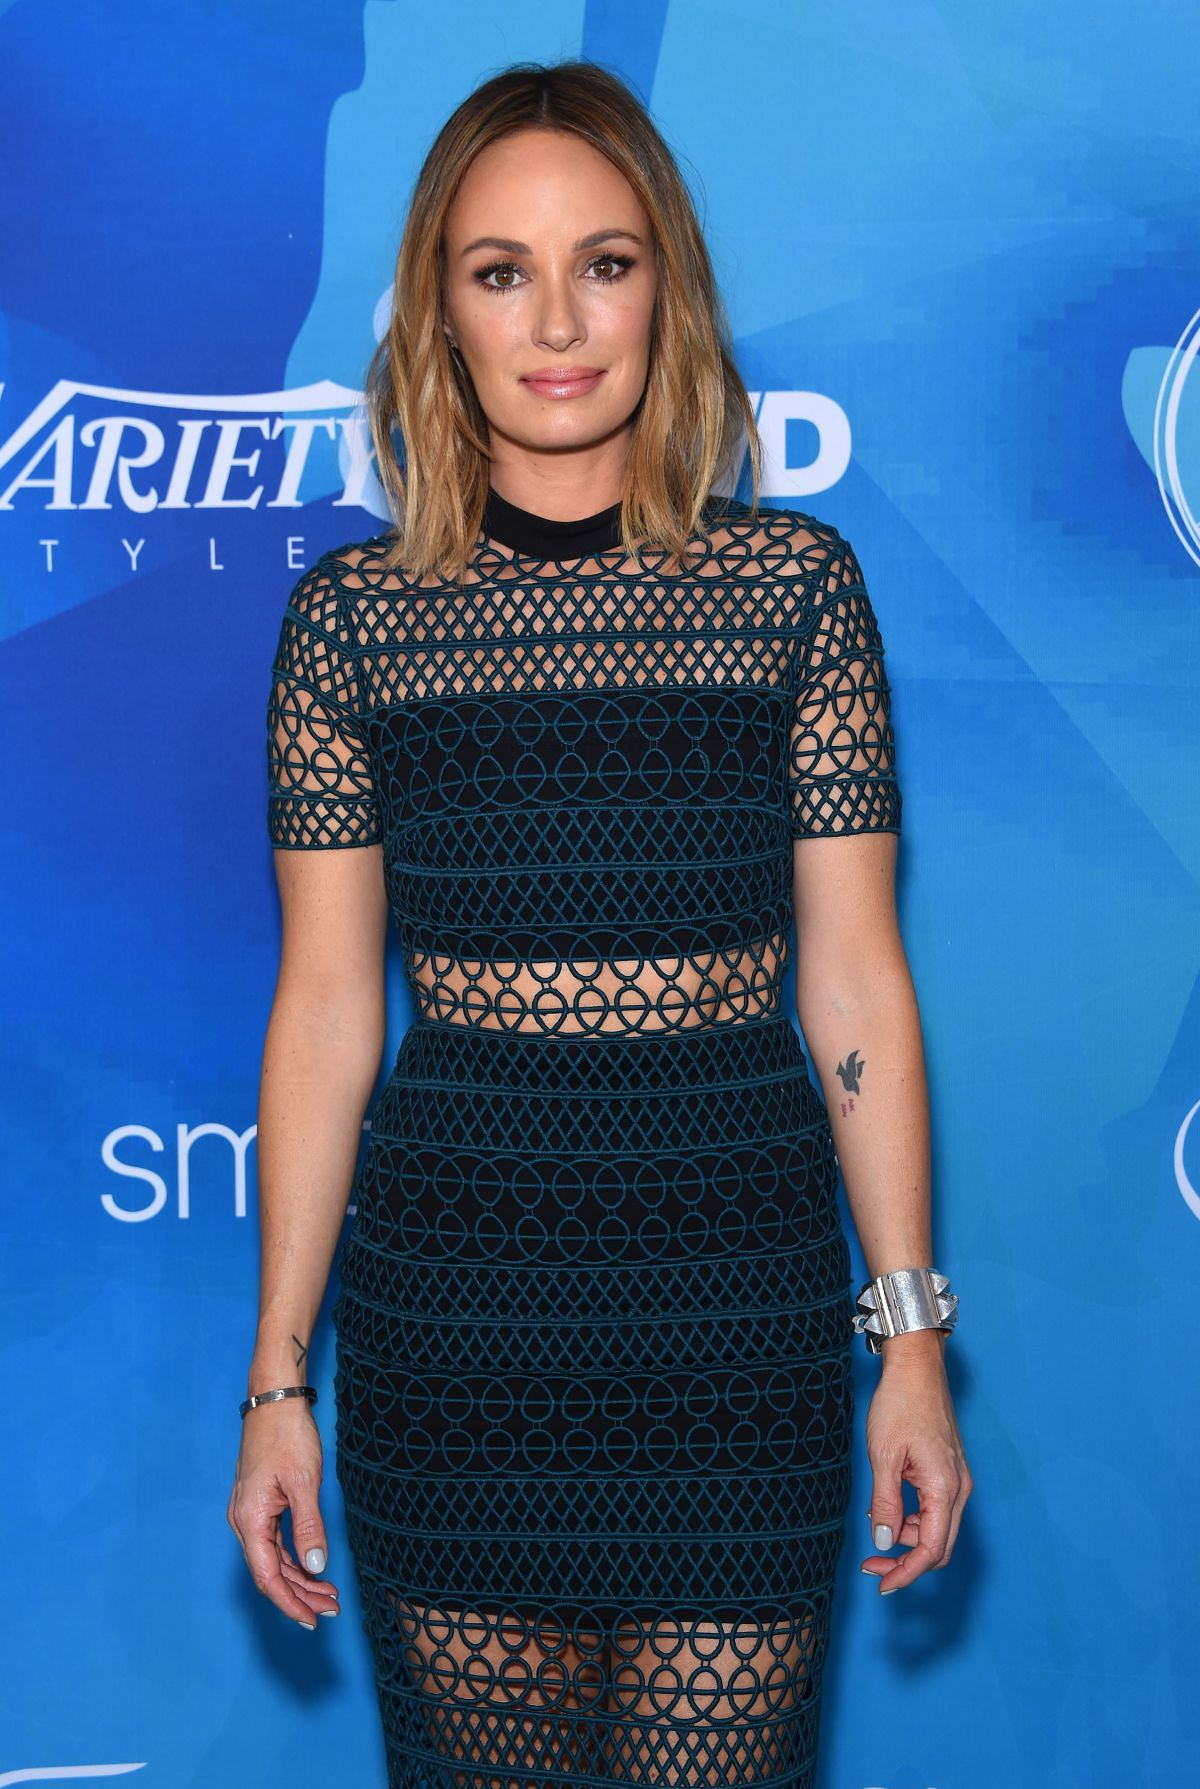 CATT SADLER at WWD and Variety's Stylemakers Event in Culver City 11/19/2015